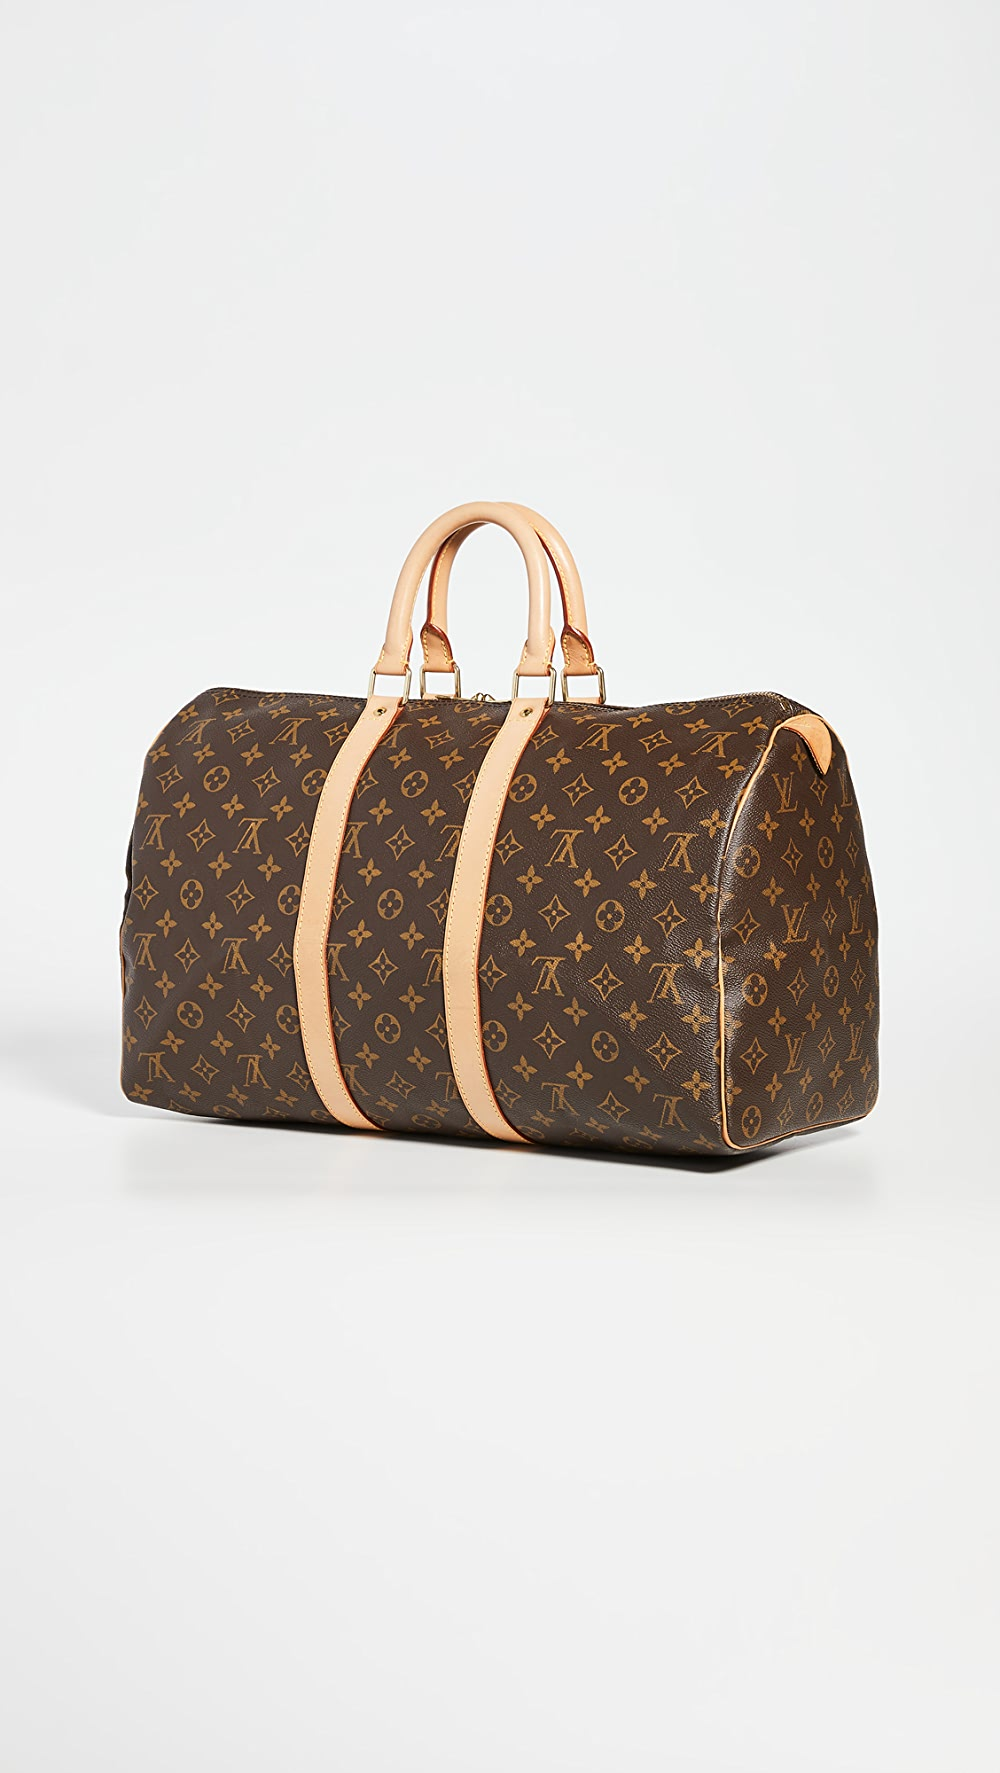 Provided What Goes Around Comes Around - Lv Monogram Keepall Bag Structural Disabilities